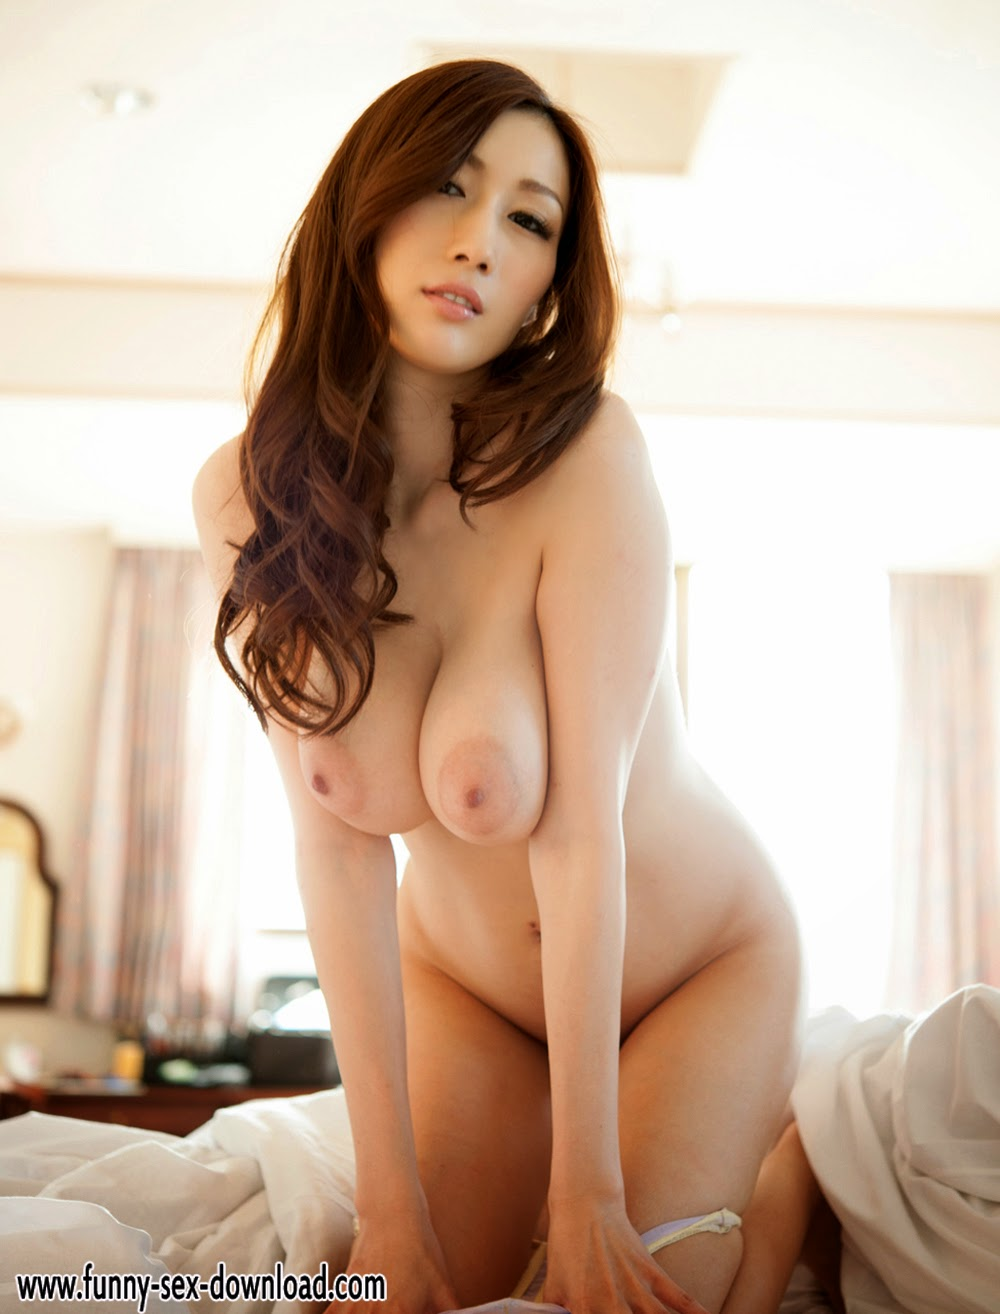 Naked korean girl picture gallery photo 105